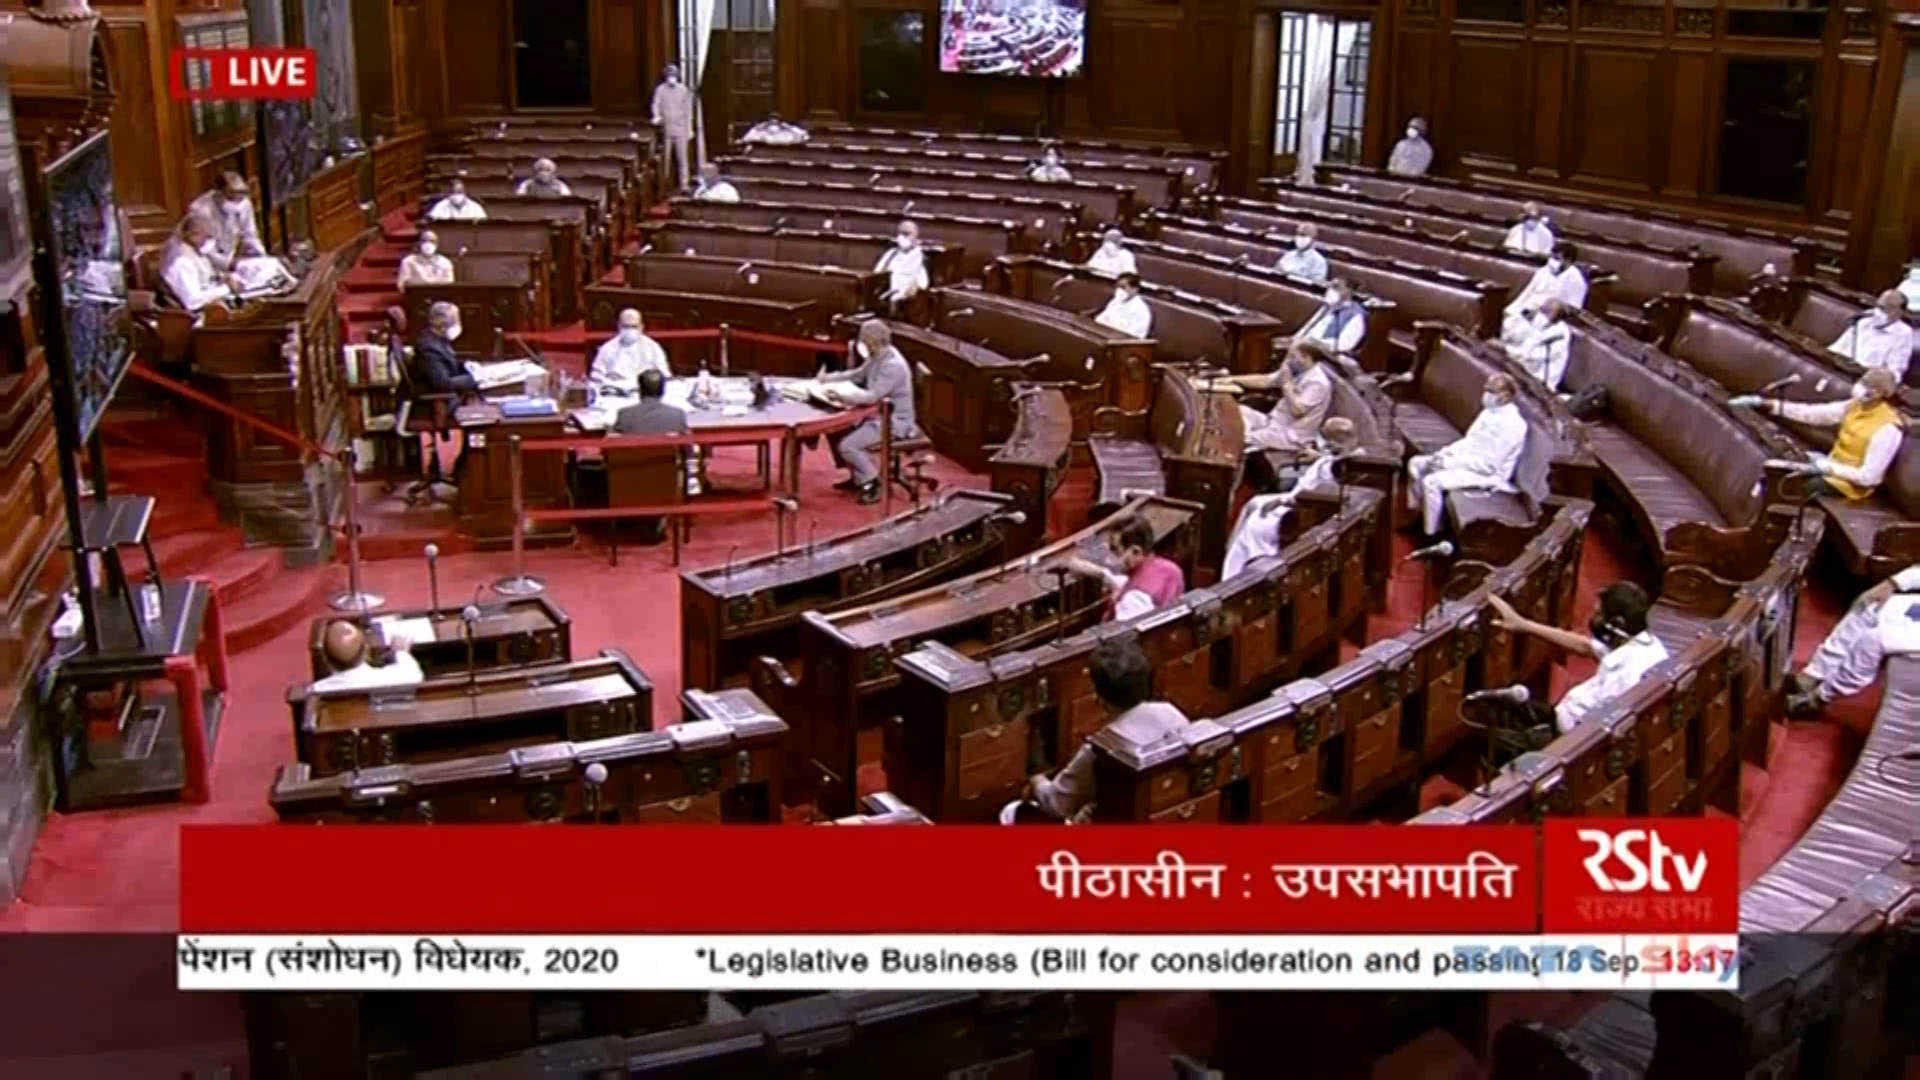 Parliament passes bill to cut salaries of MPs by 30%